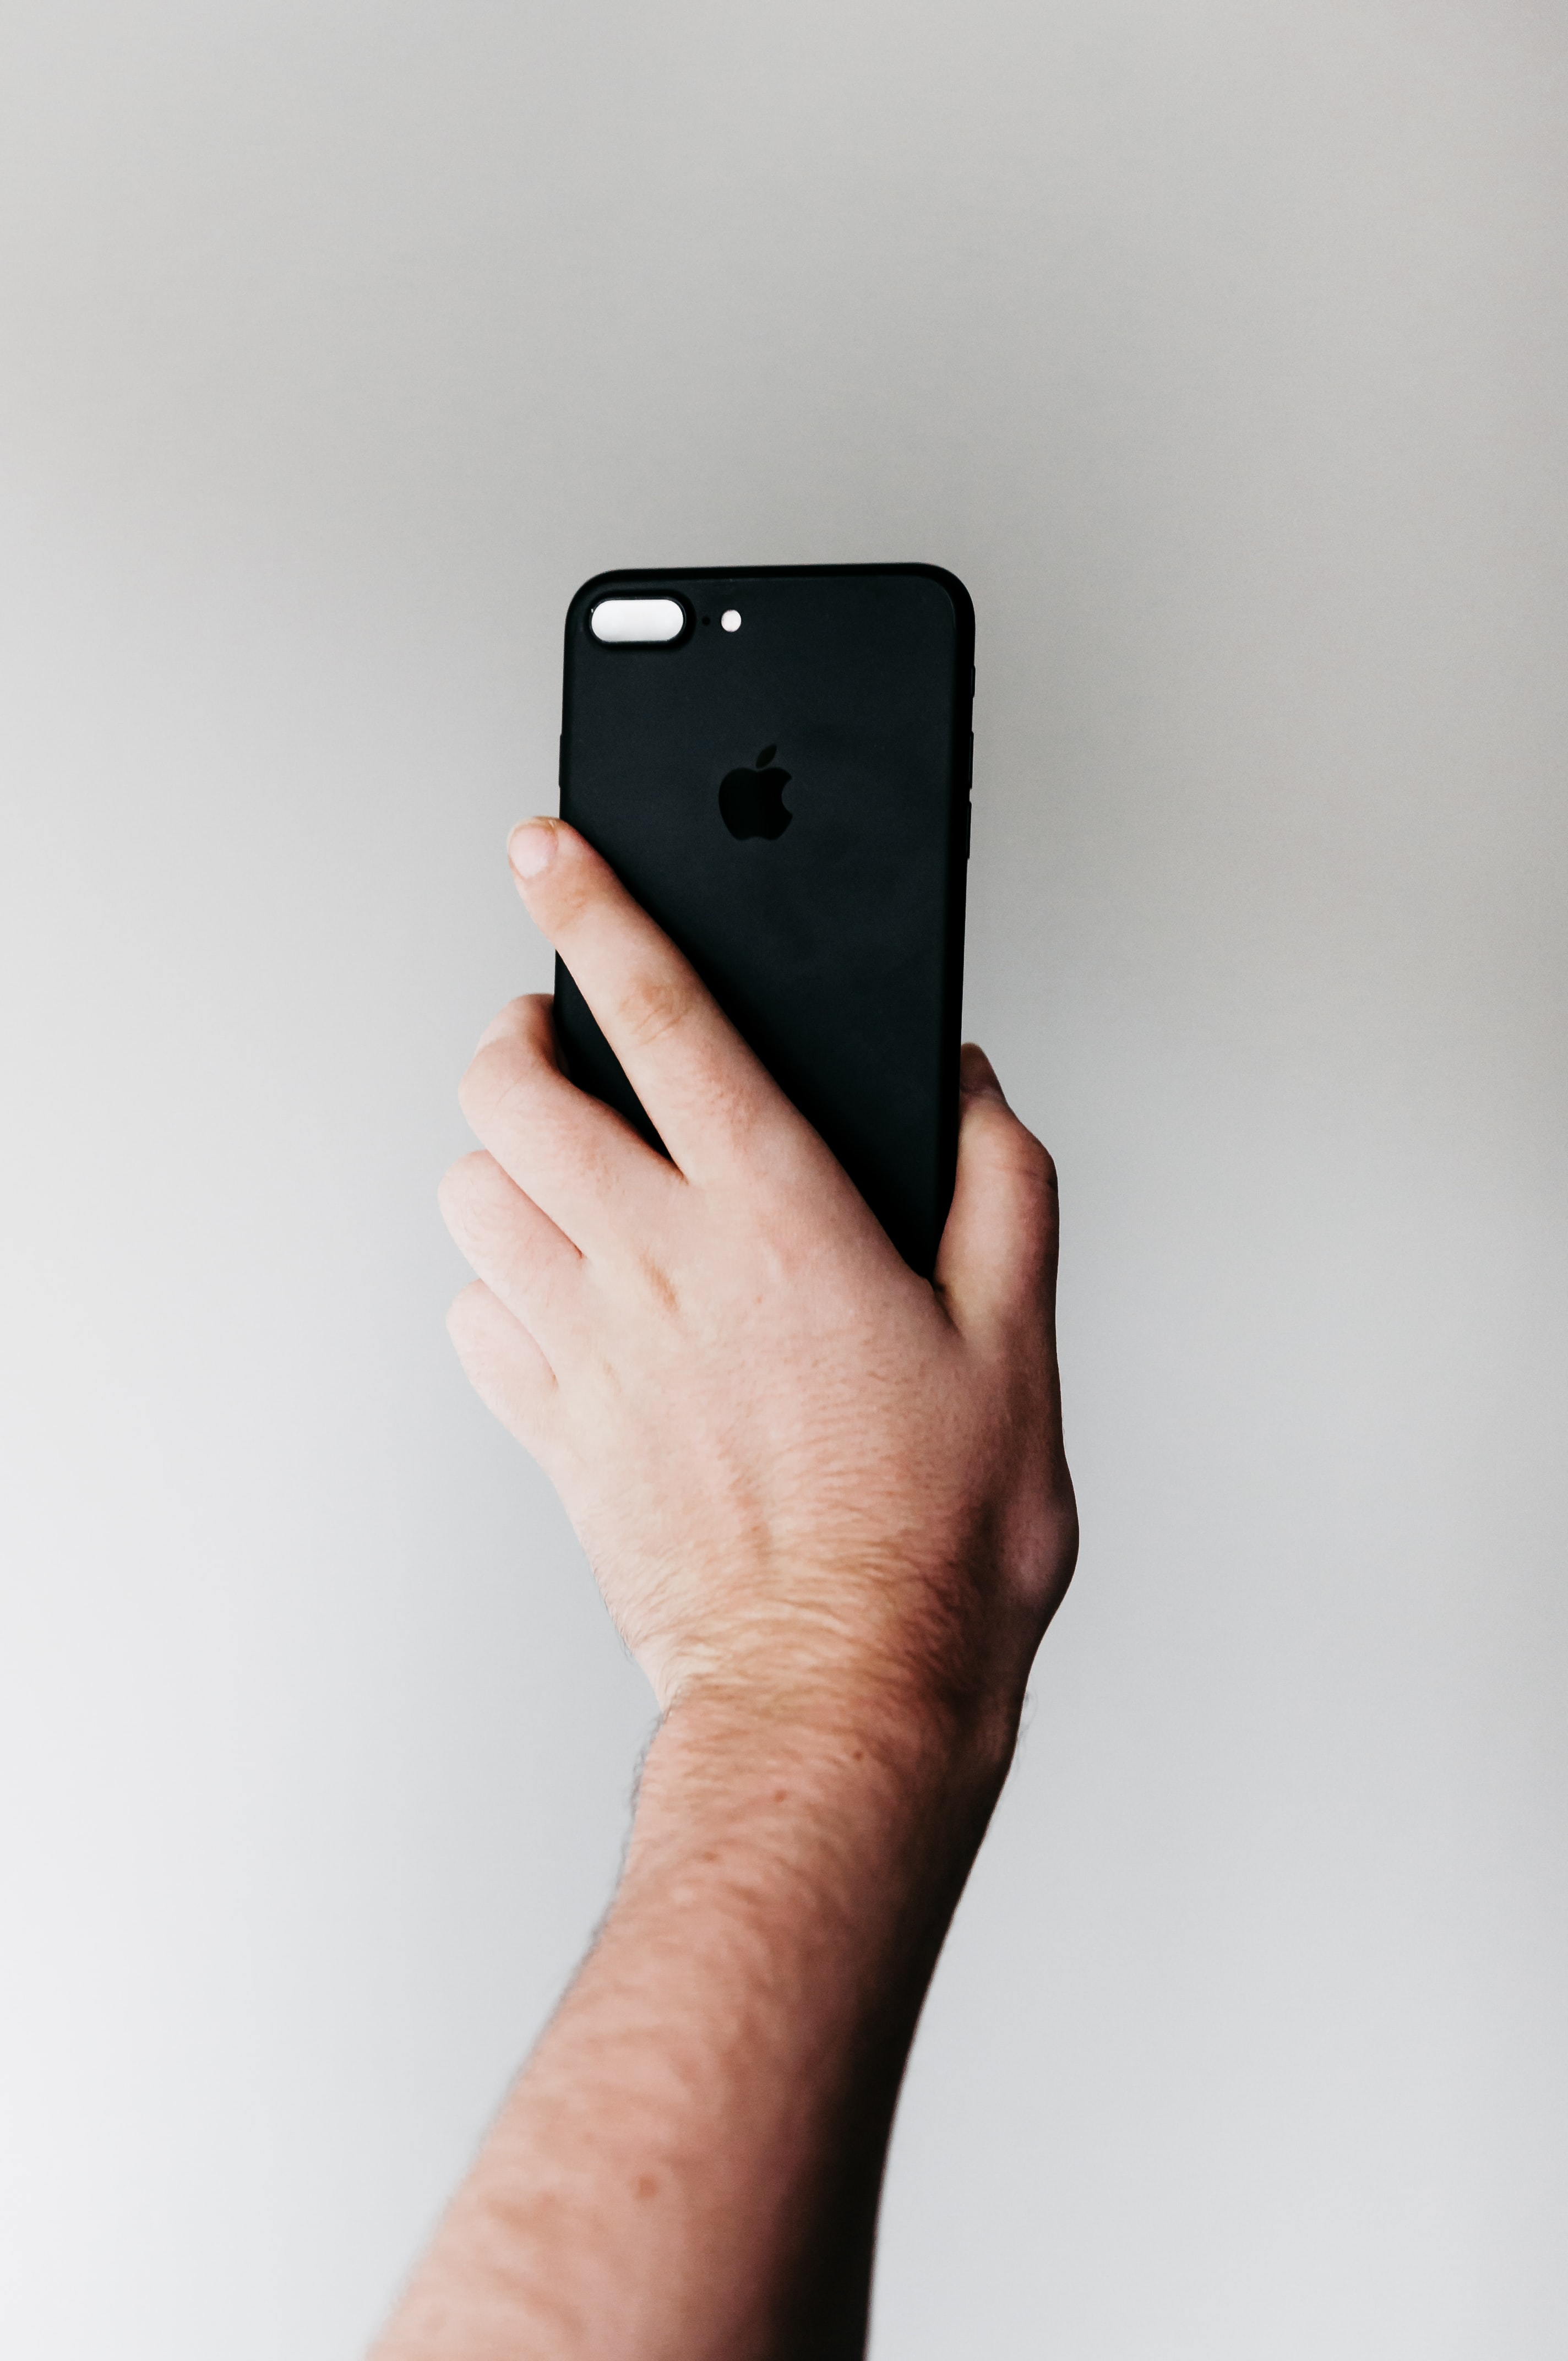 person holding space gray iPhone 8 Plus